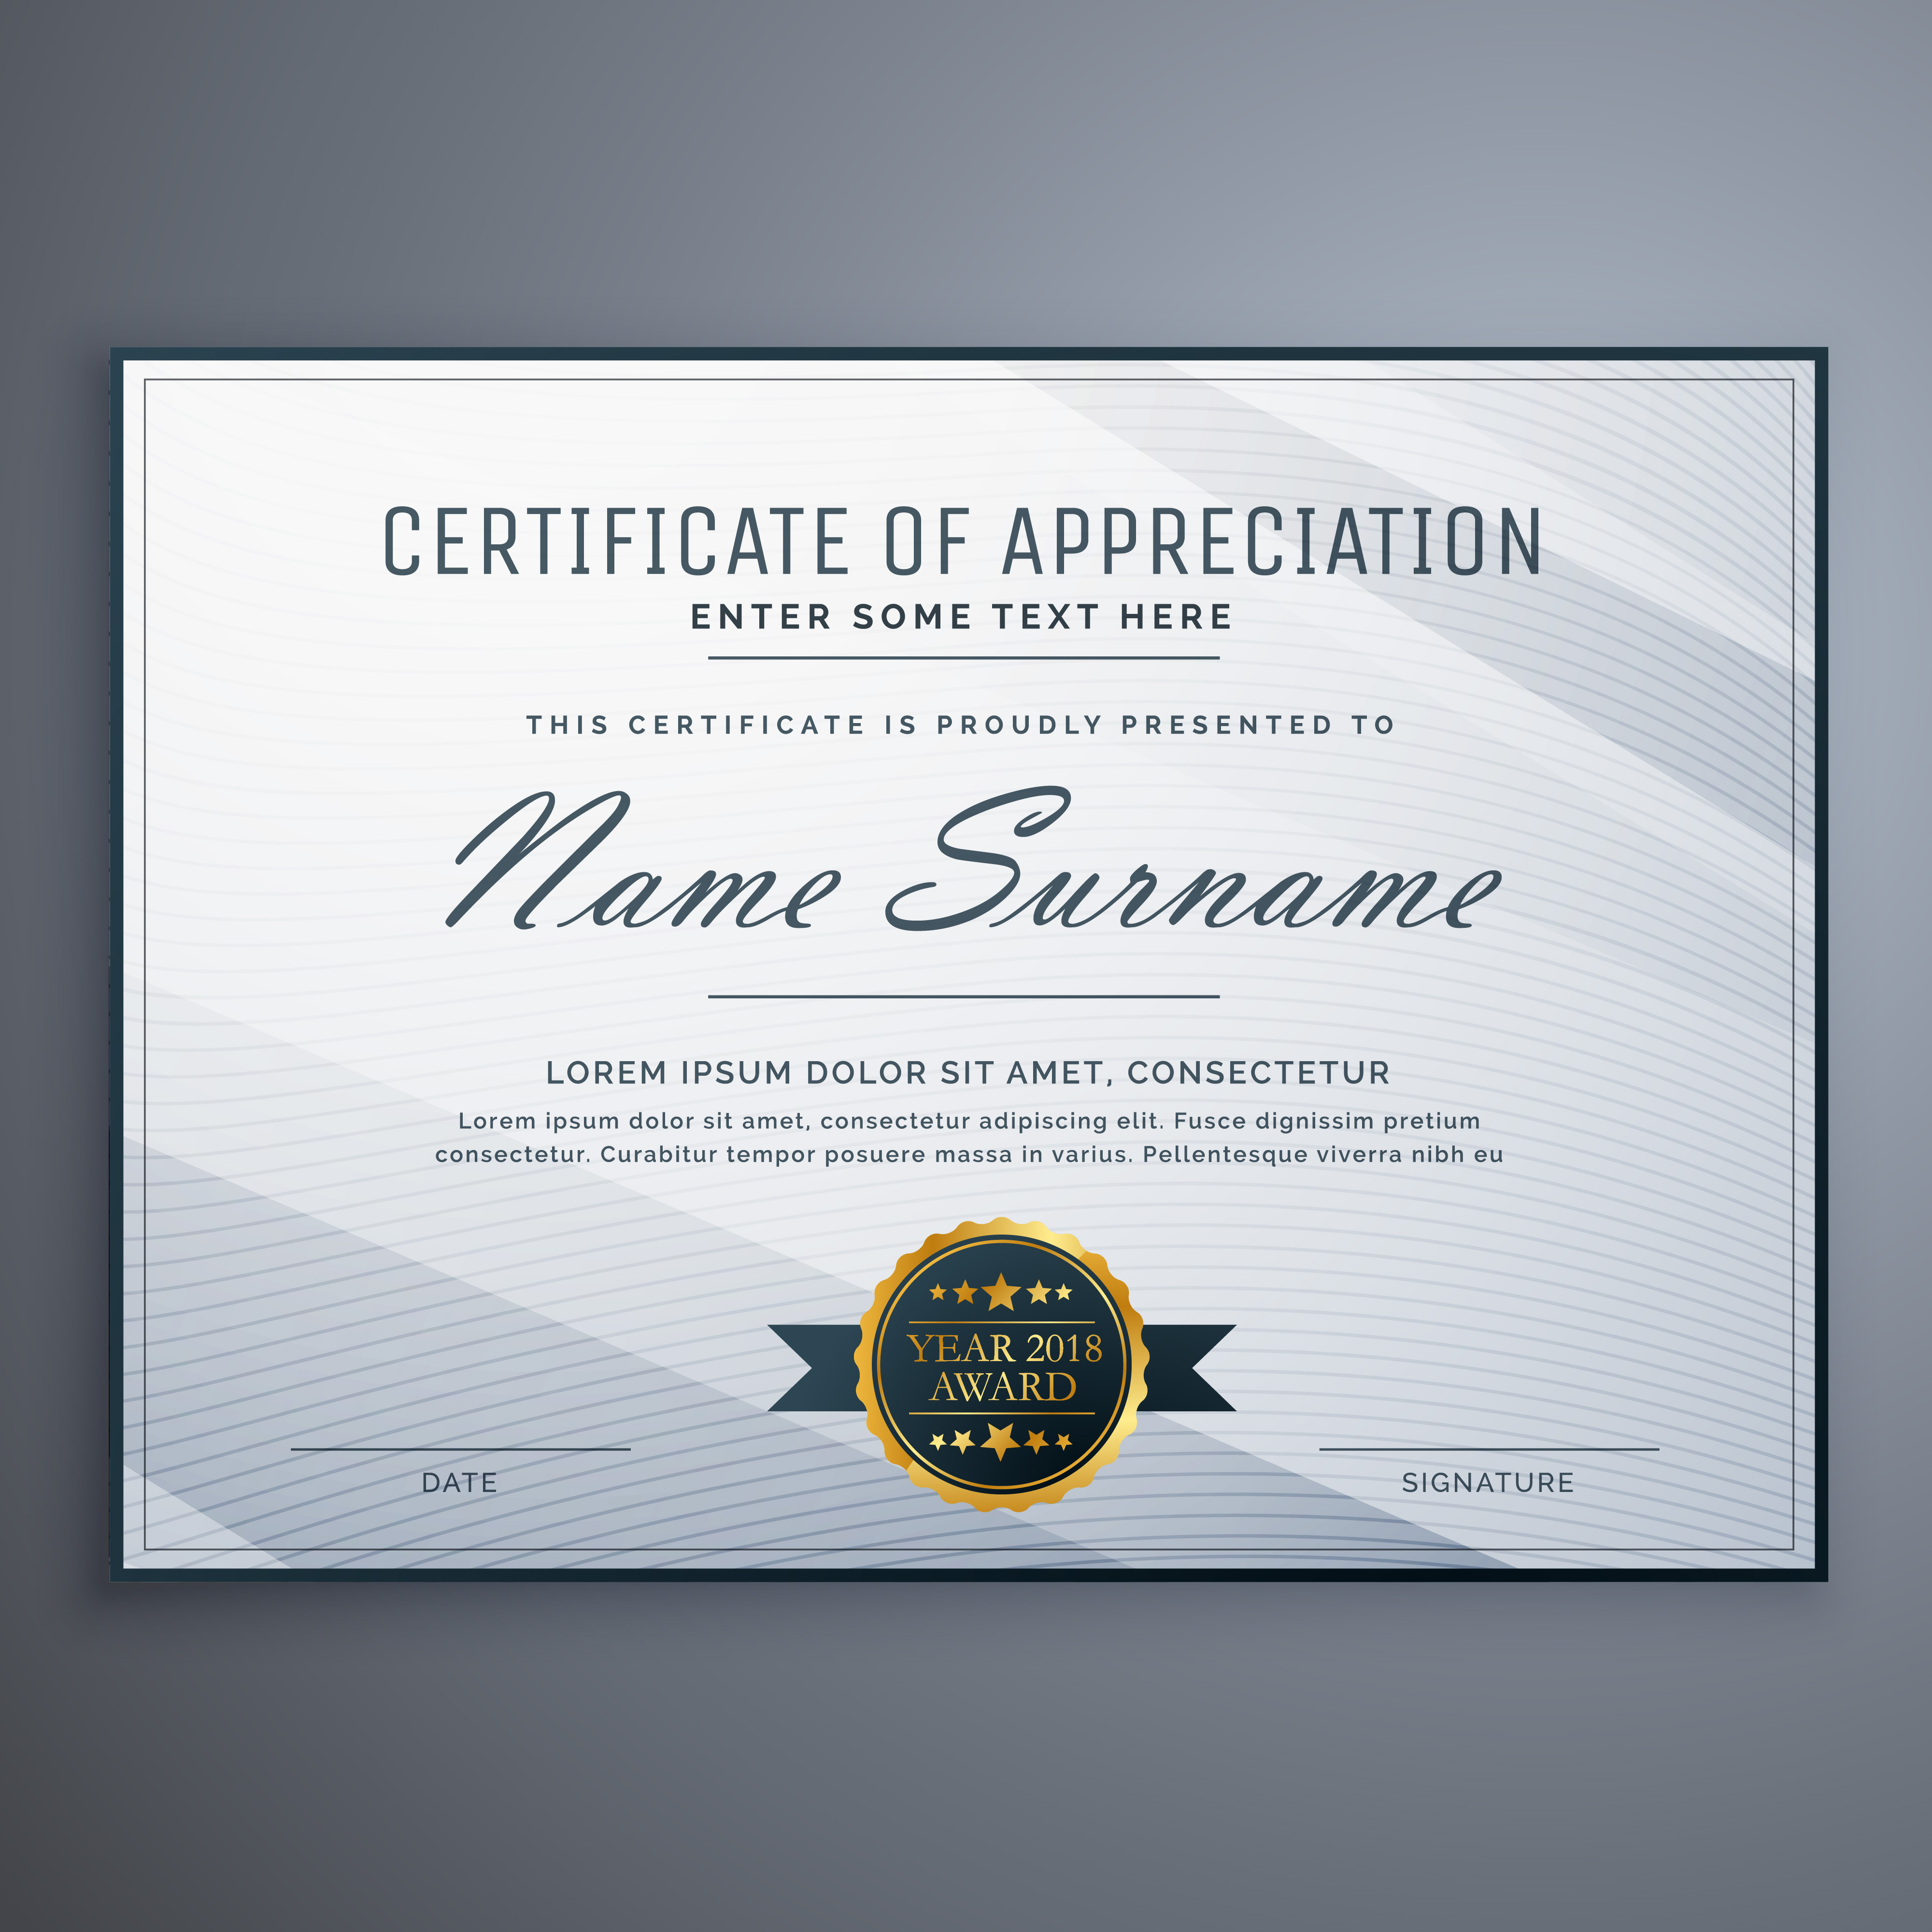 Clean Certificate Of Appreciation Template Design Download Free